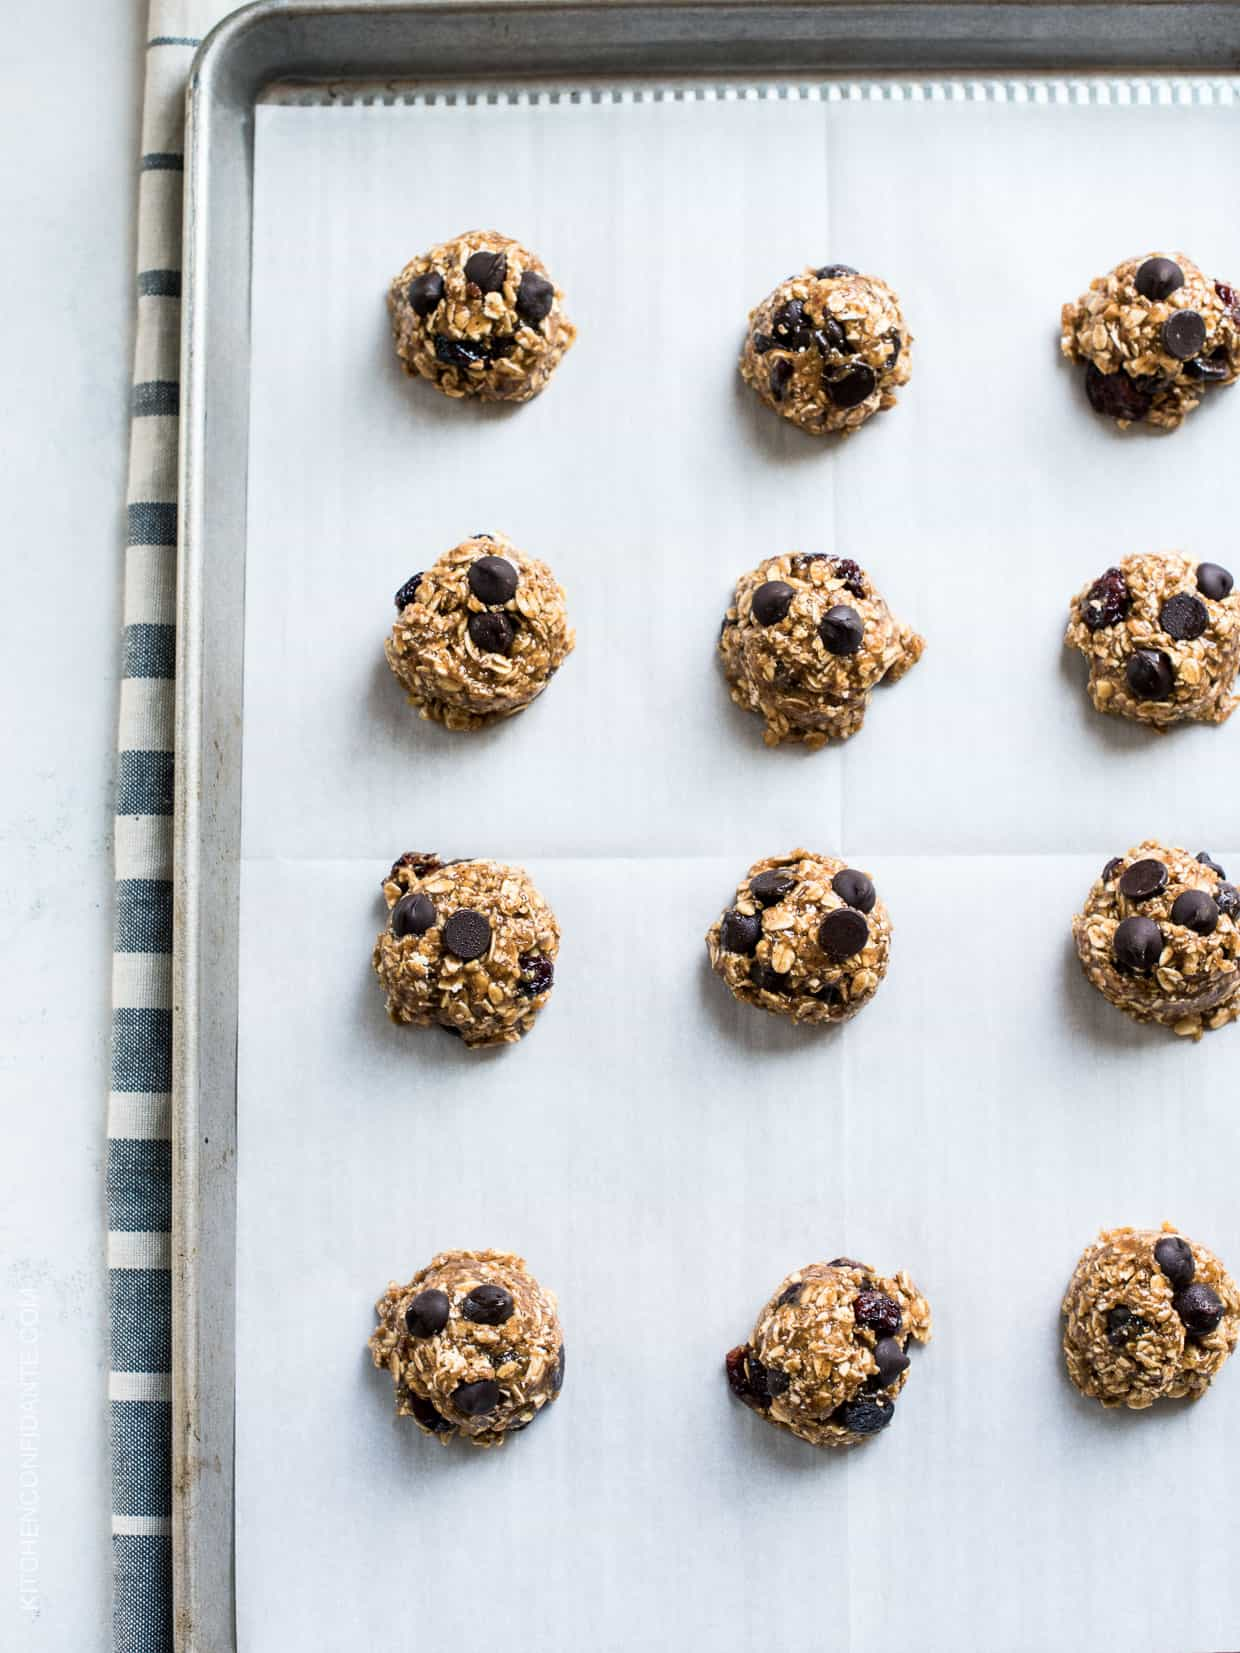 Almond Butter Oatmeal Cookie Dough on a baking sheet.